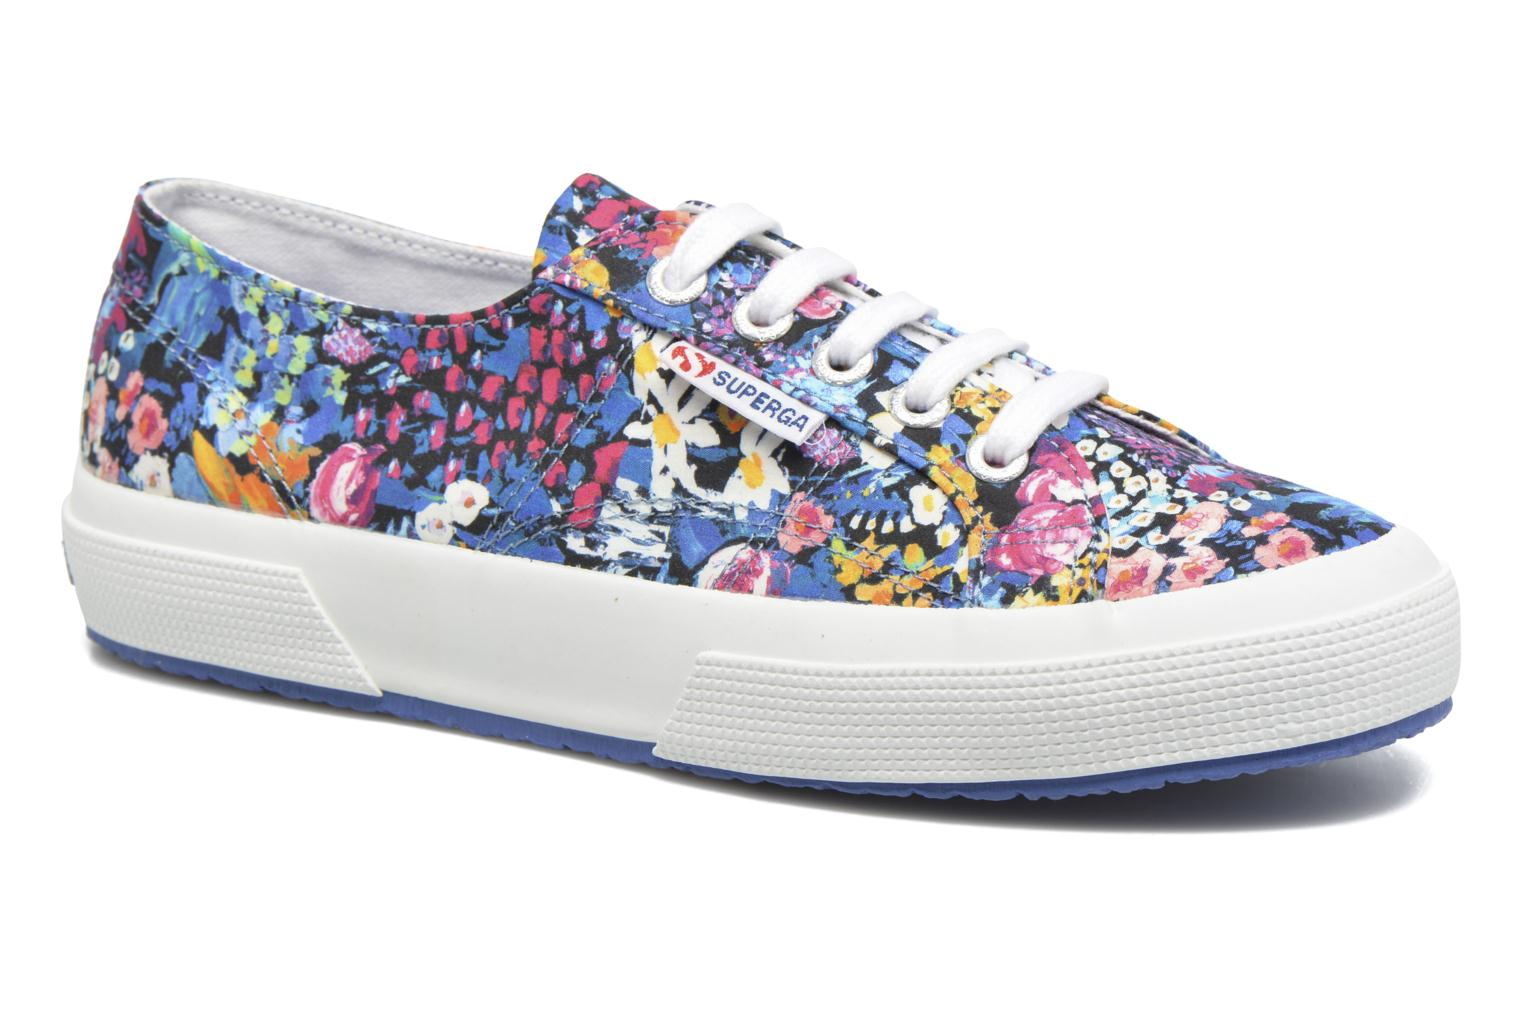 Marques Chaussure femme Superga femme 2750 Fabric Liberty W Meadow Blue-Fuxia